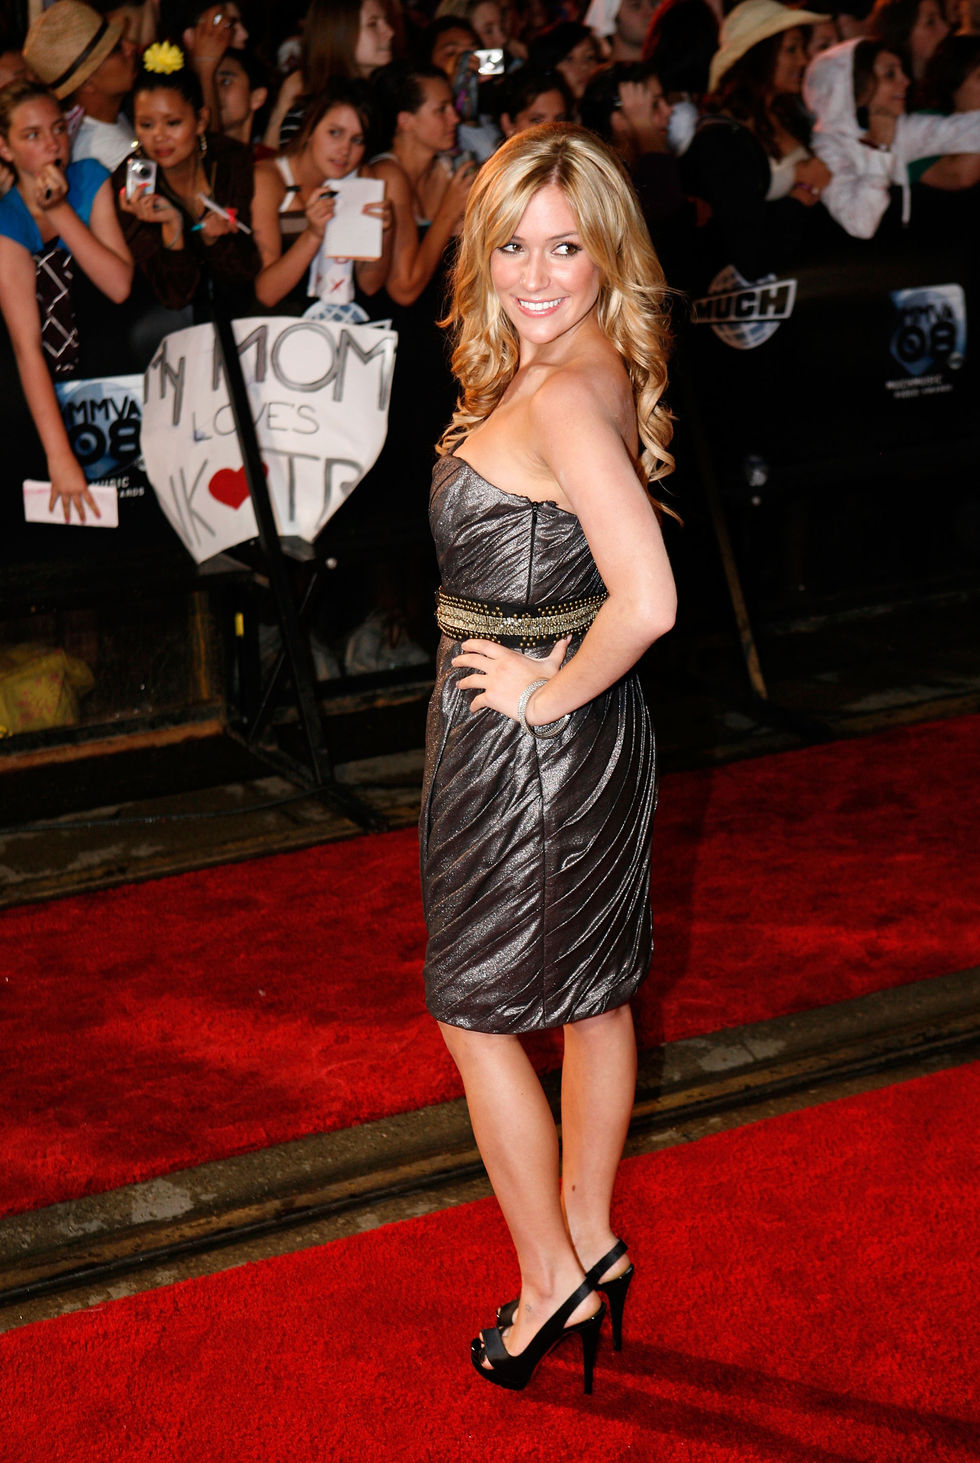 kristin-cavallari-19th-annual-muchmusic-video-awards-in-toronto-01